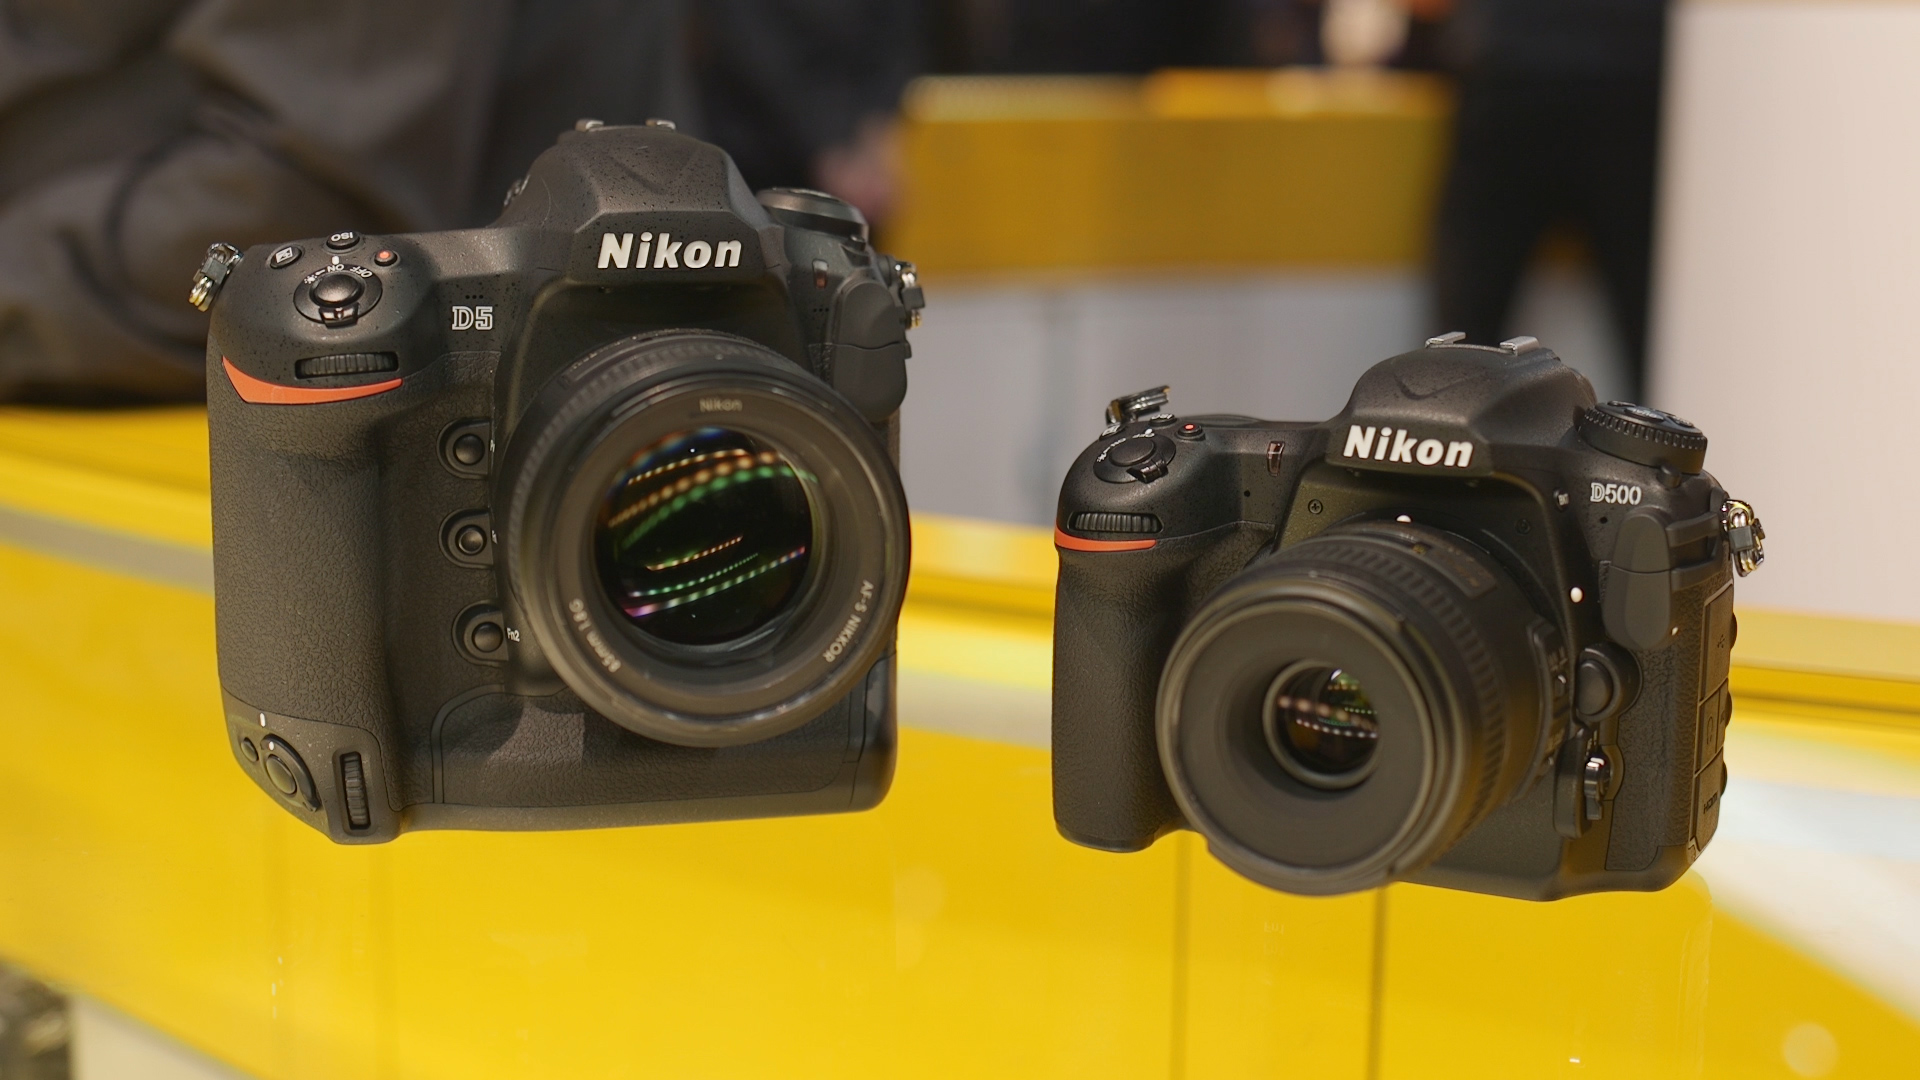 Video: Hands-on with Nikon's newest DSLRs